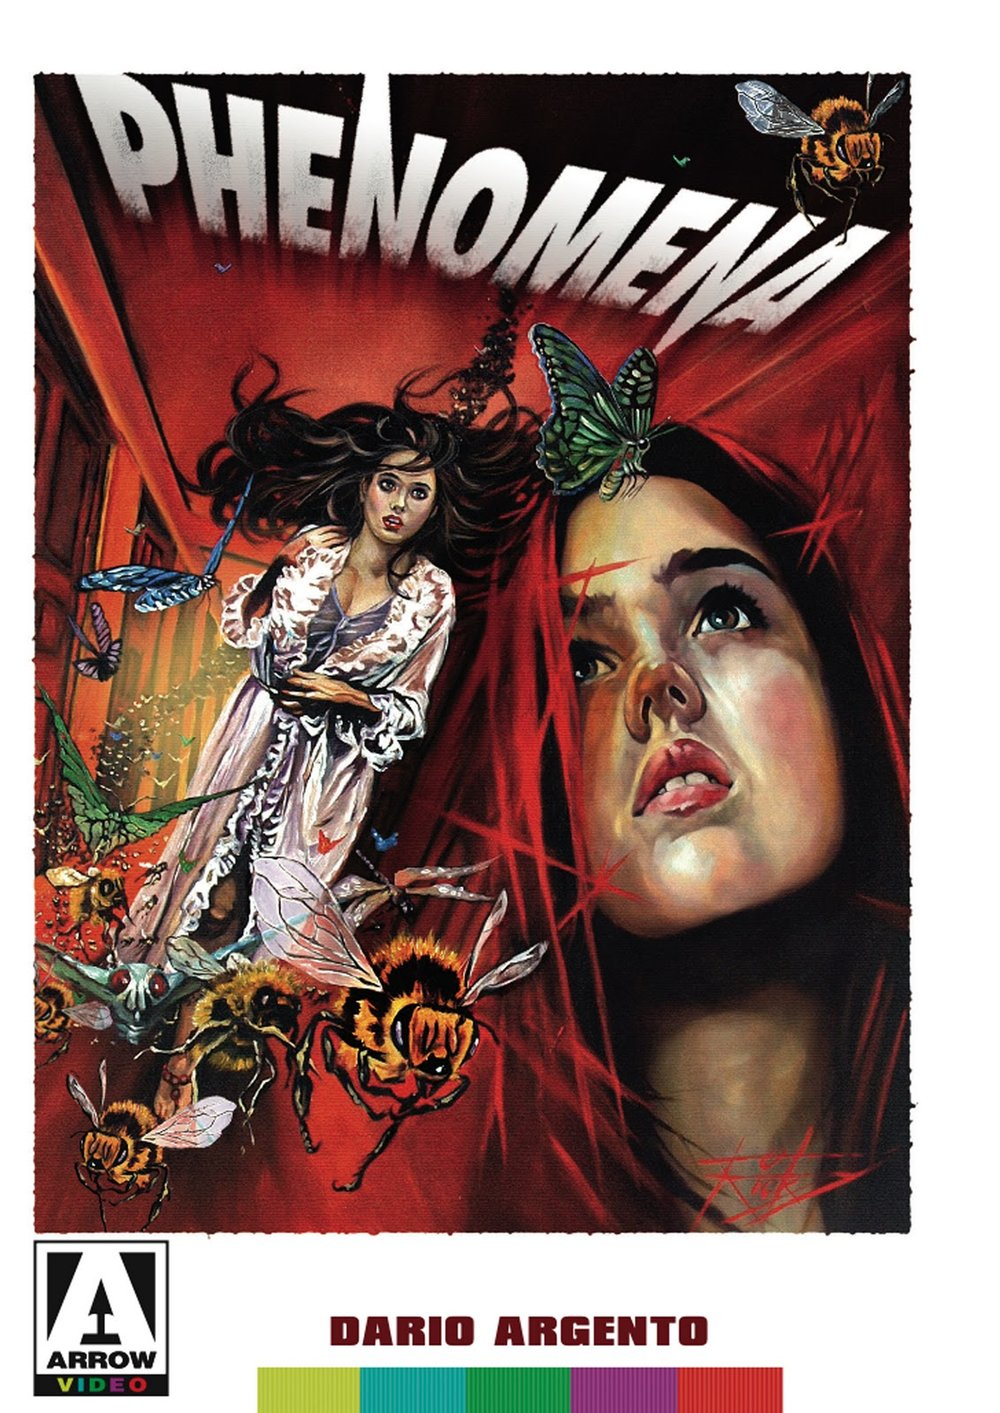 Phenomena (1985) - Directed by: Dario ArgentoStarring: Jennifer Connelly, Daria Nicoldi, Donald PleasanceRated: RRunning Time: 1 h 56 mTMM Score: 4 stars out of 5STRENGTHS: Direction, Style, Practical Effects, Weird Story, Some ActingWEAKNESSES: A Bit Farfetched at Points, Some Acting, Some Writing